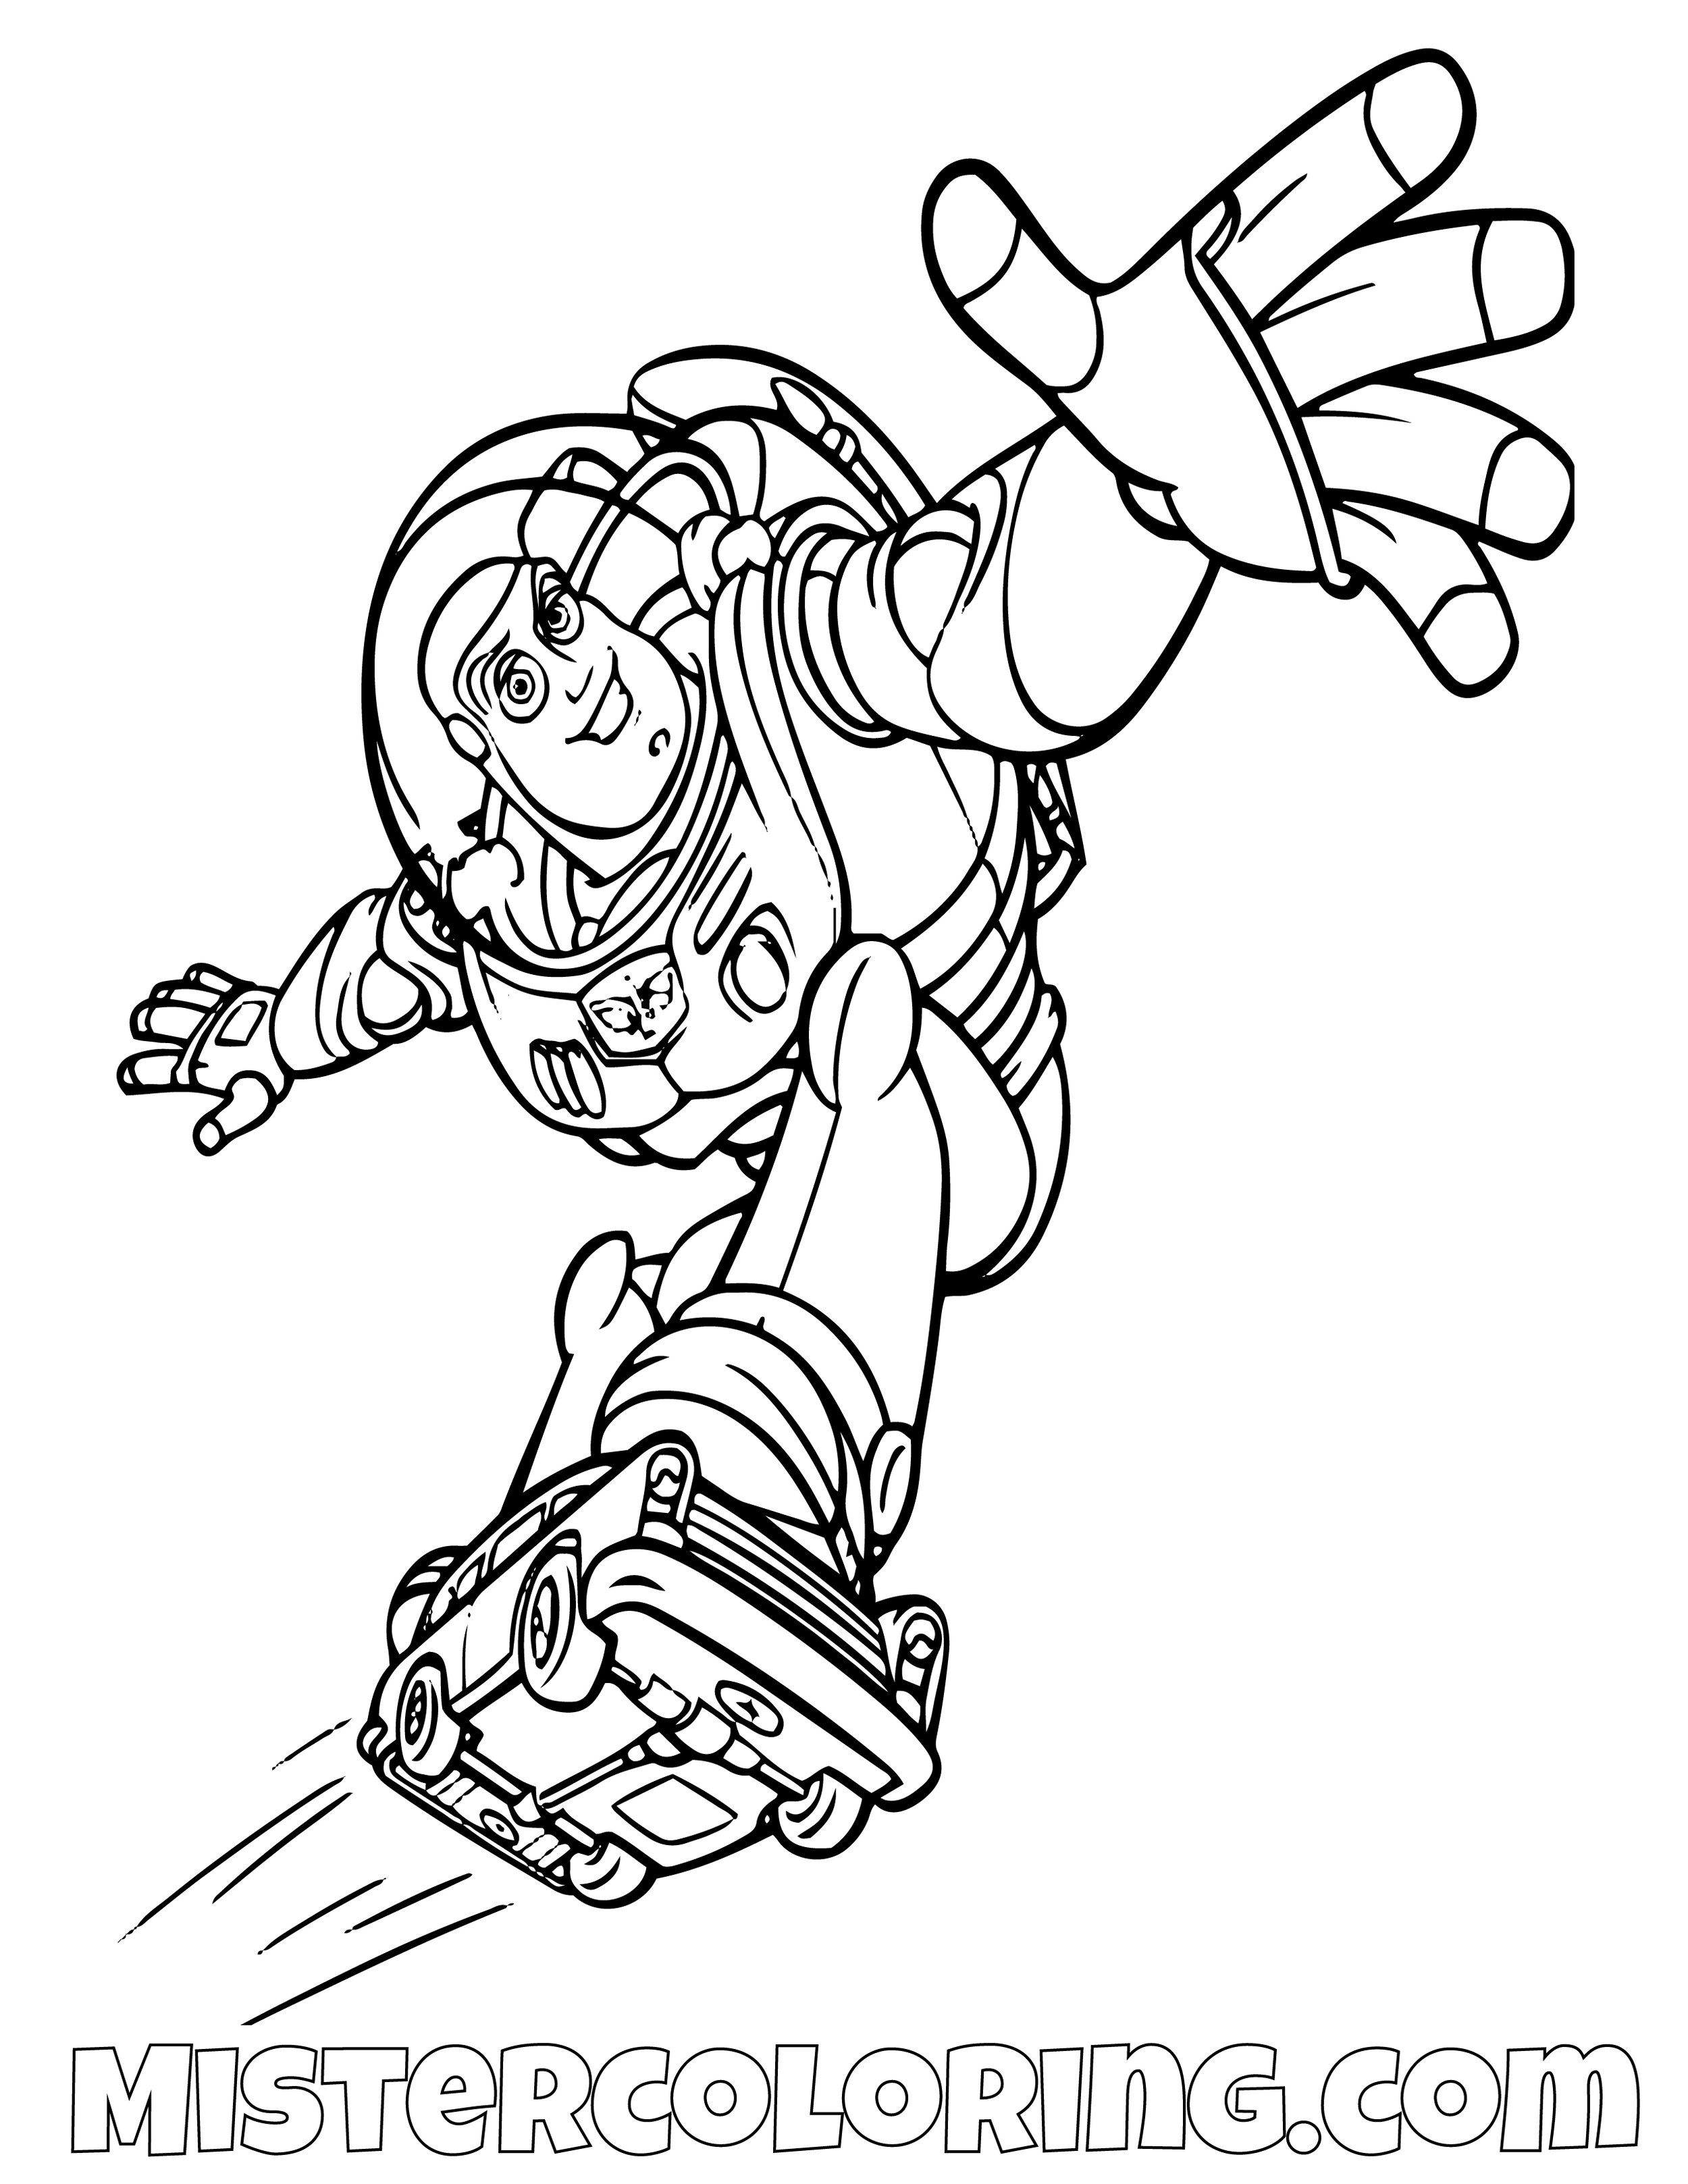 Buzz Lightyear Riding A Car Toy Story Coloring Page